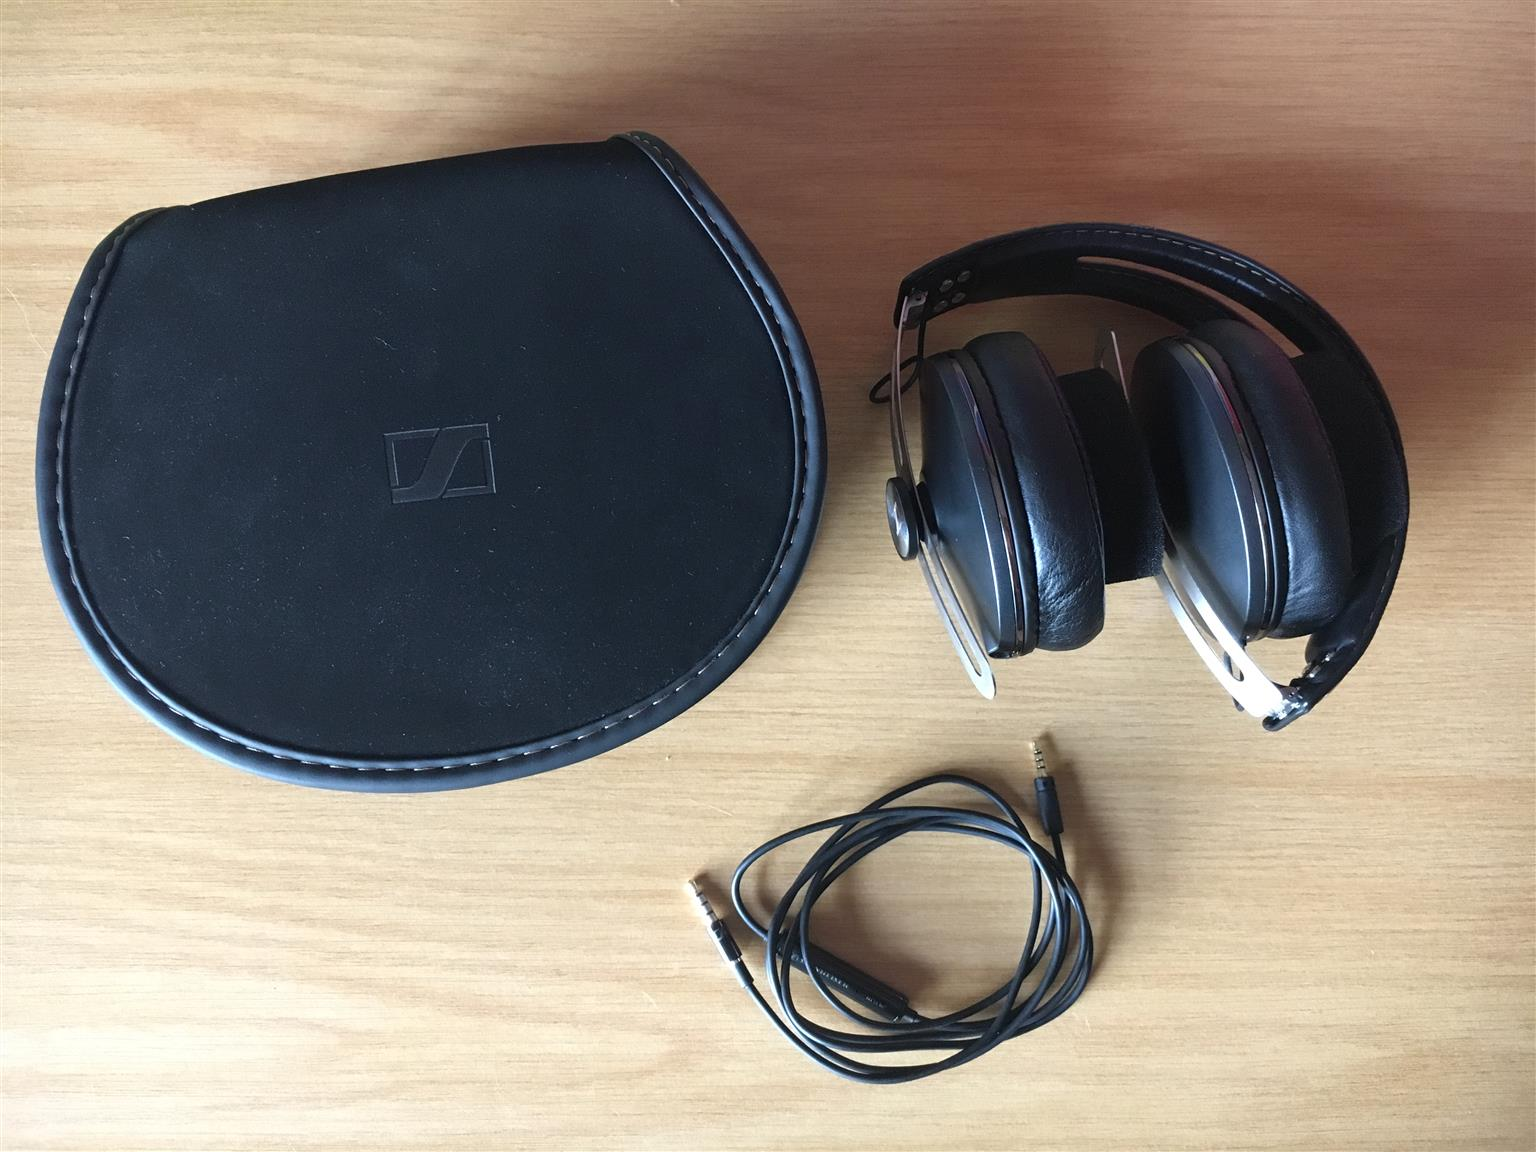 Sennheiser Momentum 20 Black M2 Aei Over Ear Headphones Junk Mail 2i